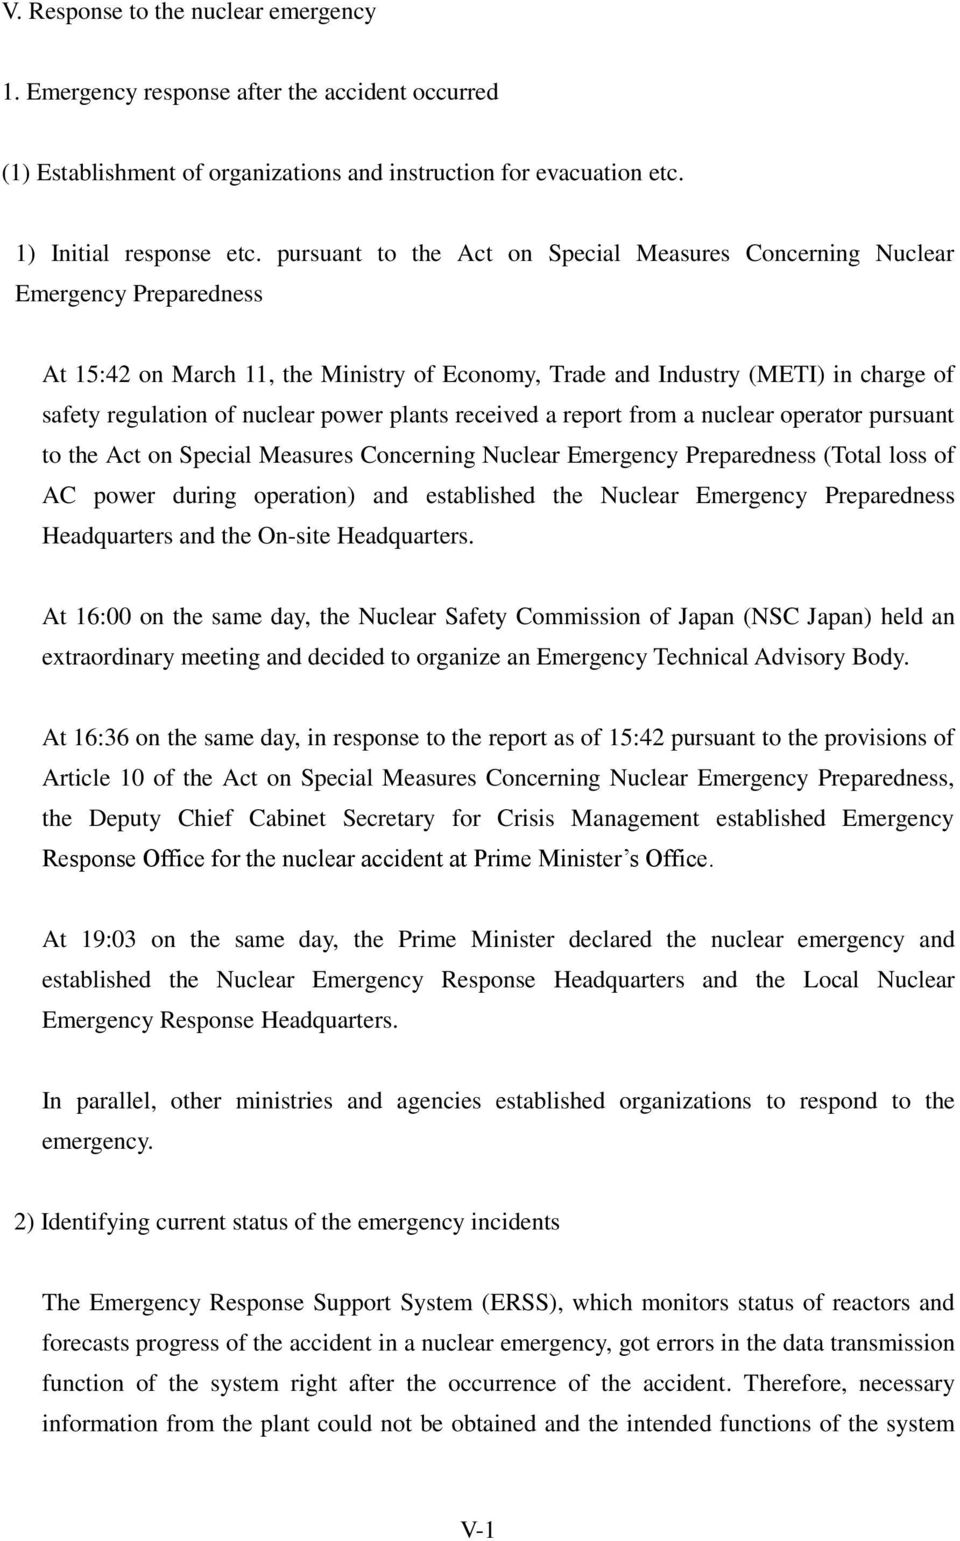 power plants received a report from a nuclear operator pursuant to the Act on Special Measures Concerning Nuclear Emergency Preparedness (Total loss of AC power during operation) and established the